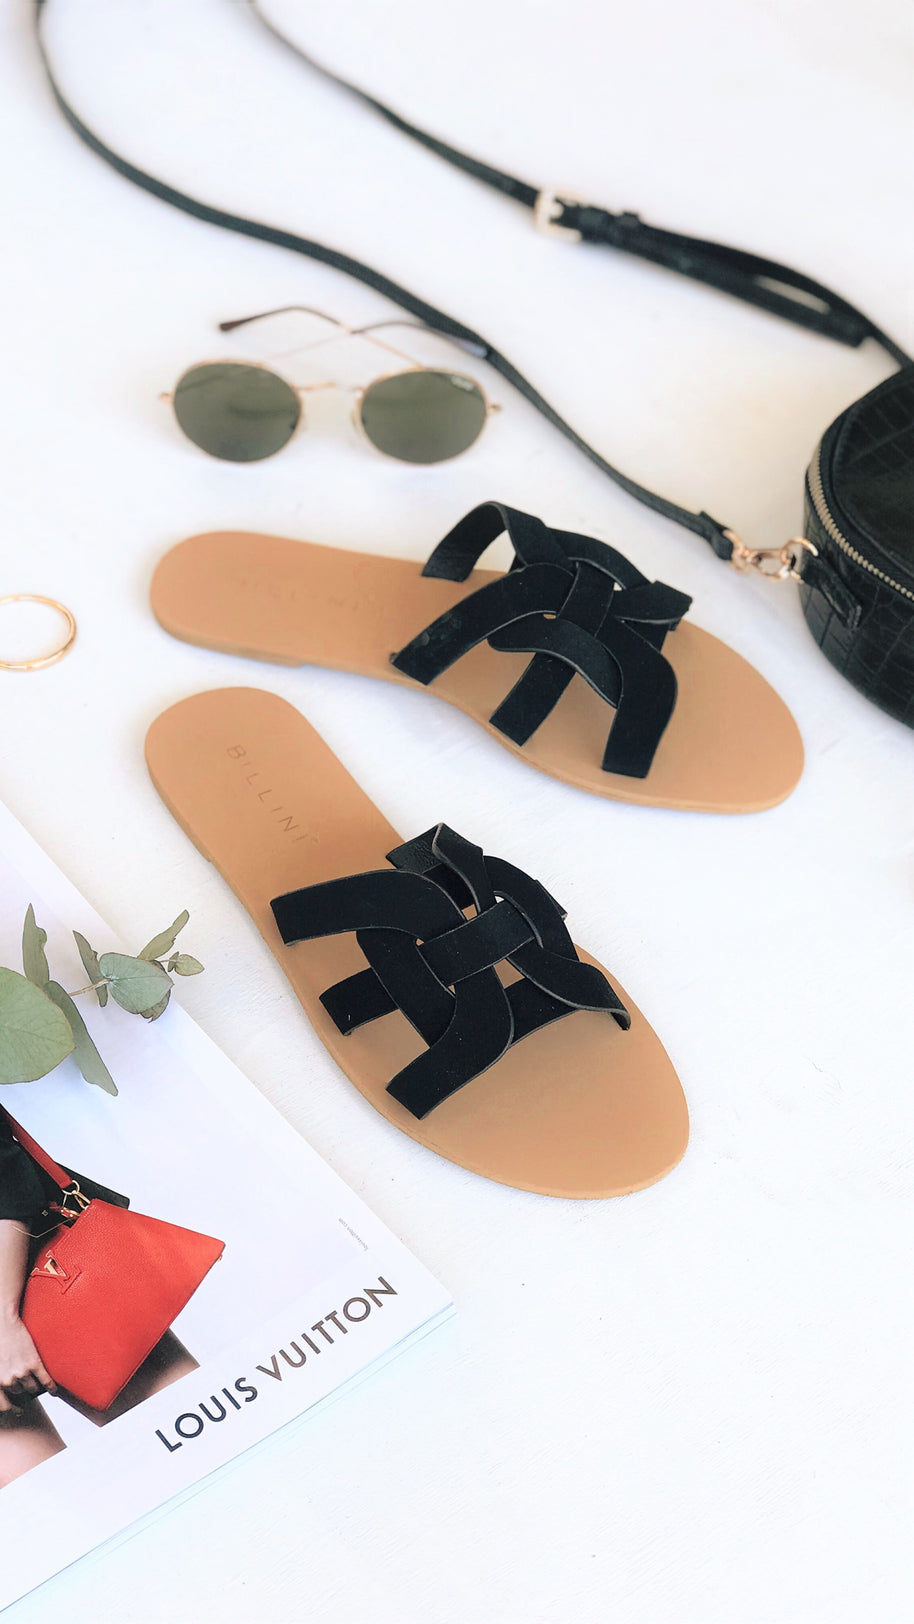 Atlantis Slide - Black Nubuck